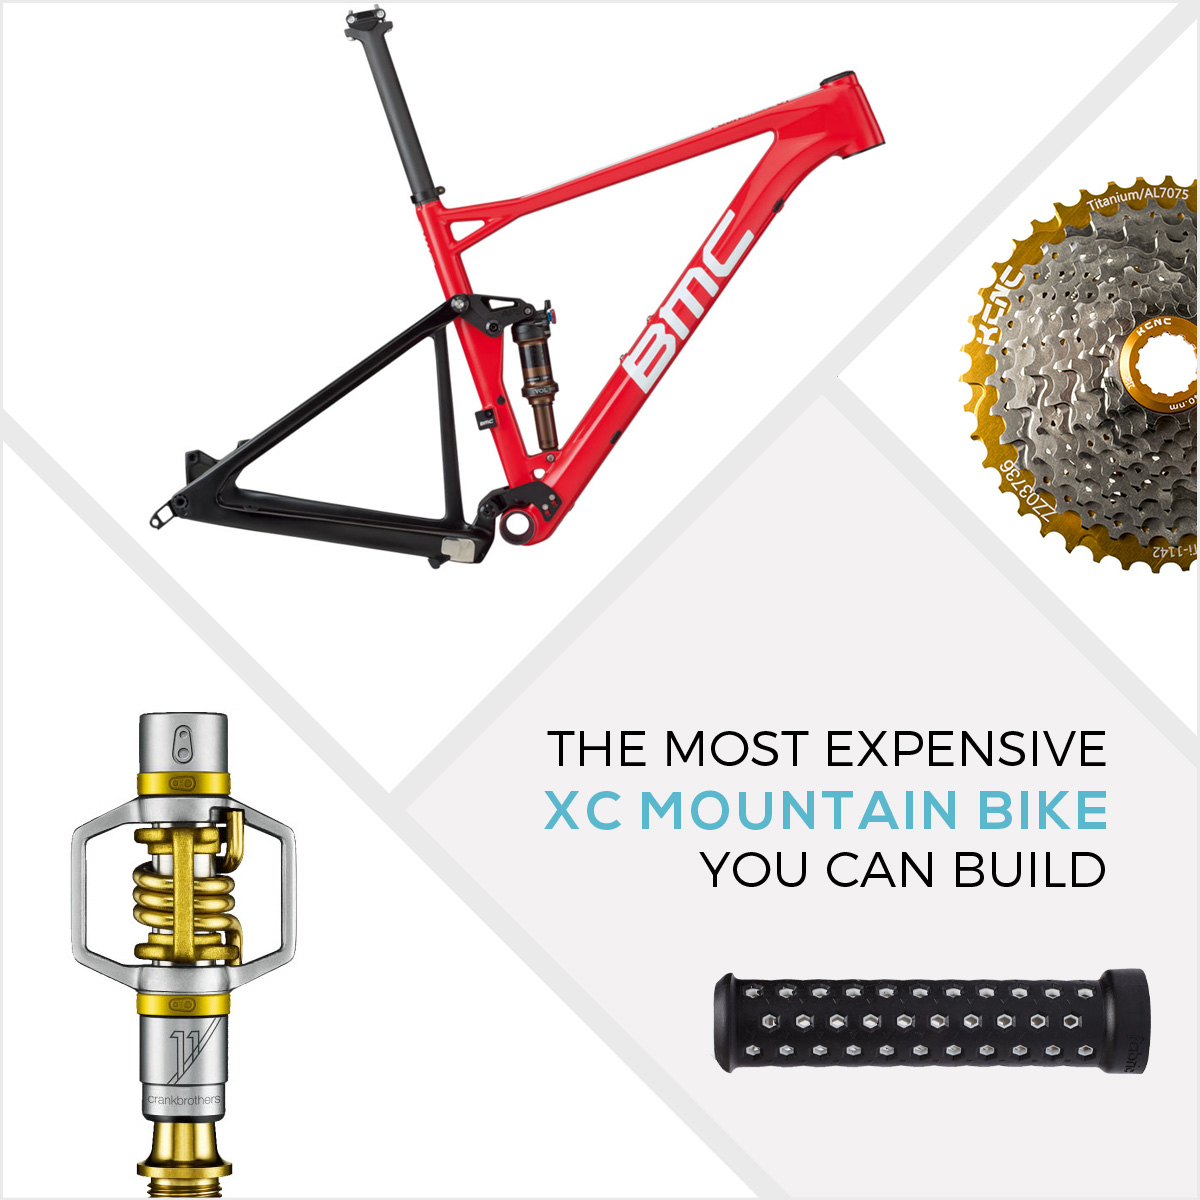 The Most Expensive XC Mountain Bike You Can Build